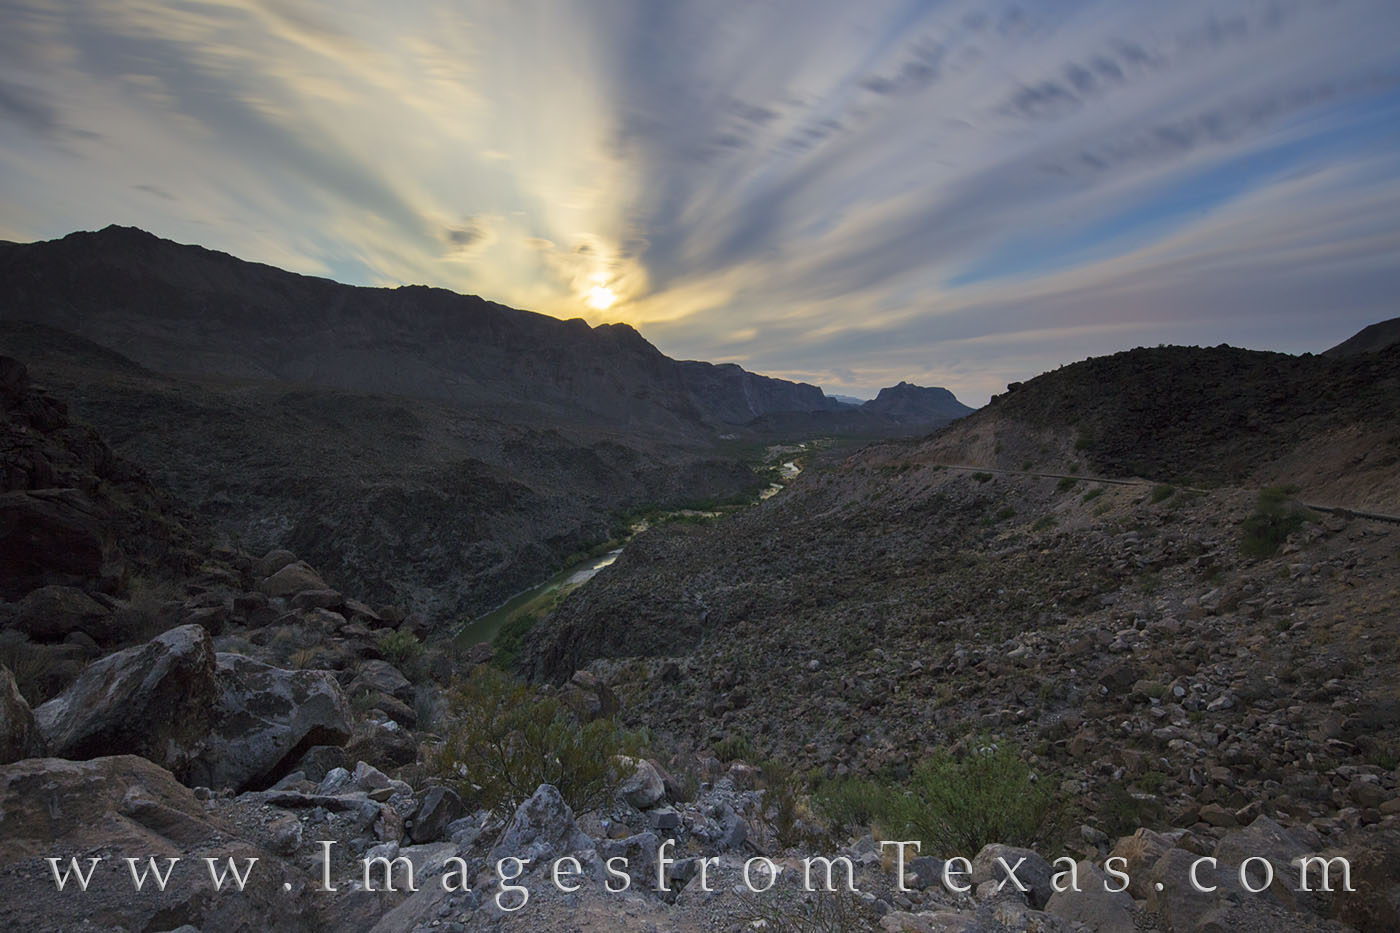 big bend ranch, rio grande, full moon, big hill, night, FM 170, dom rock, texas landscapes, state parks, Texas state parks, photo